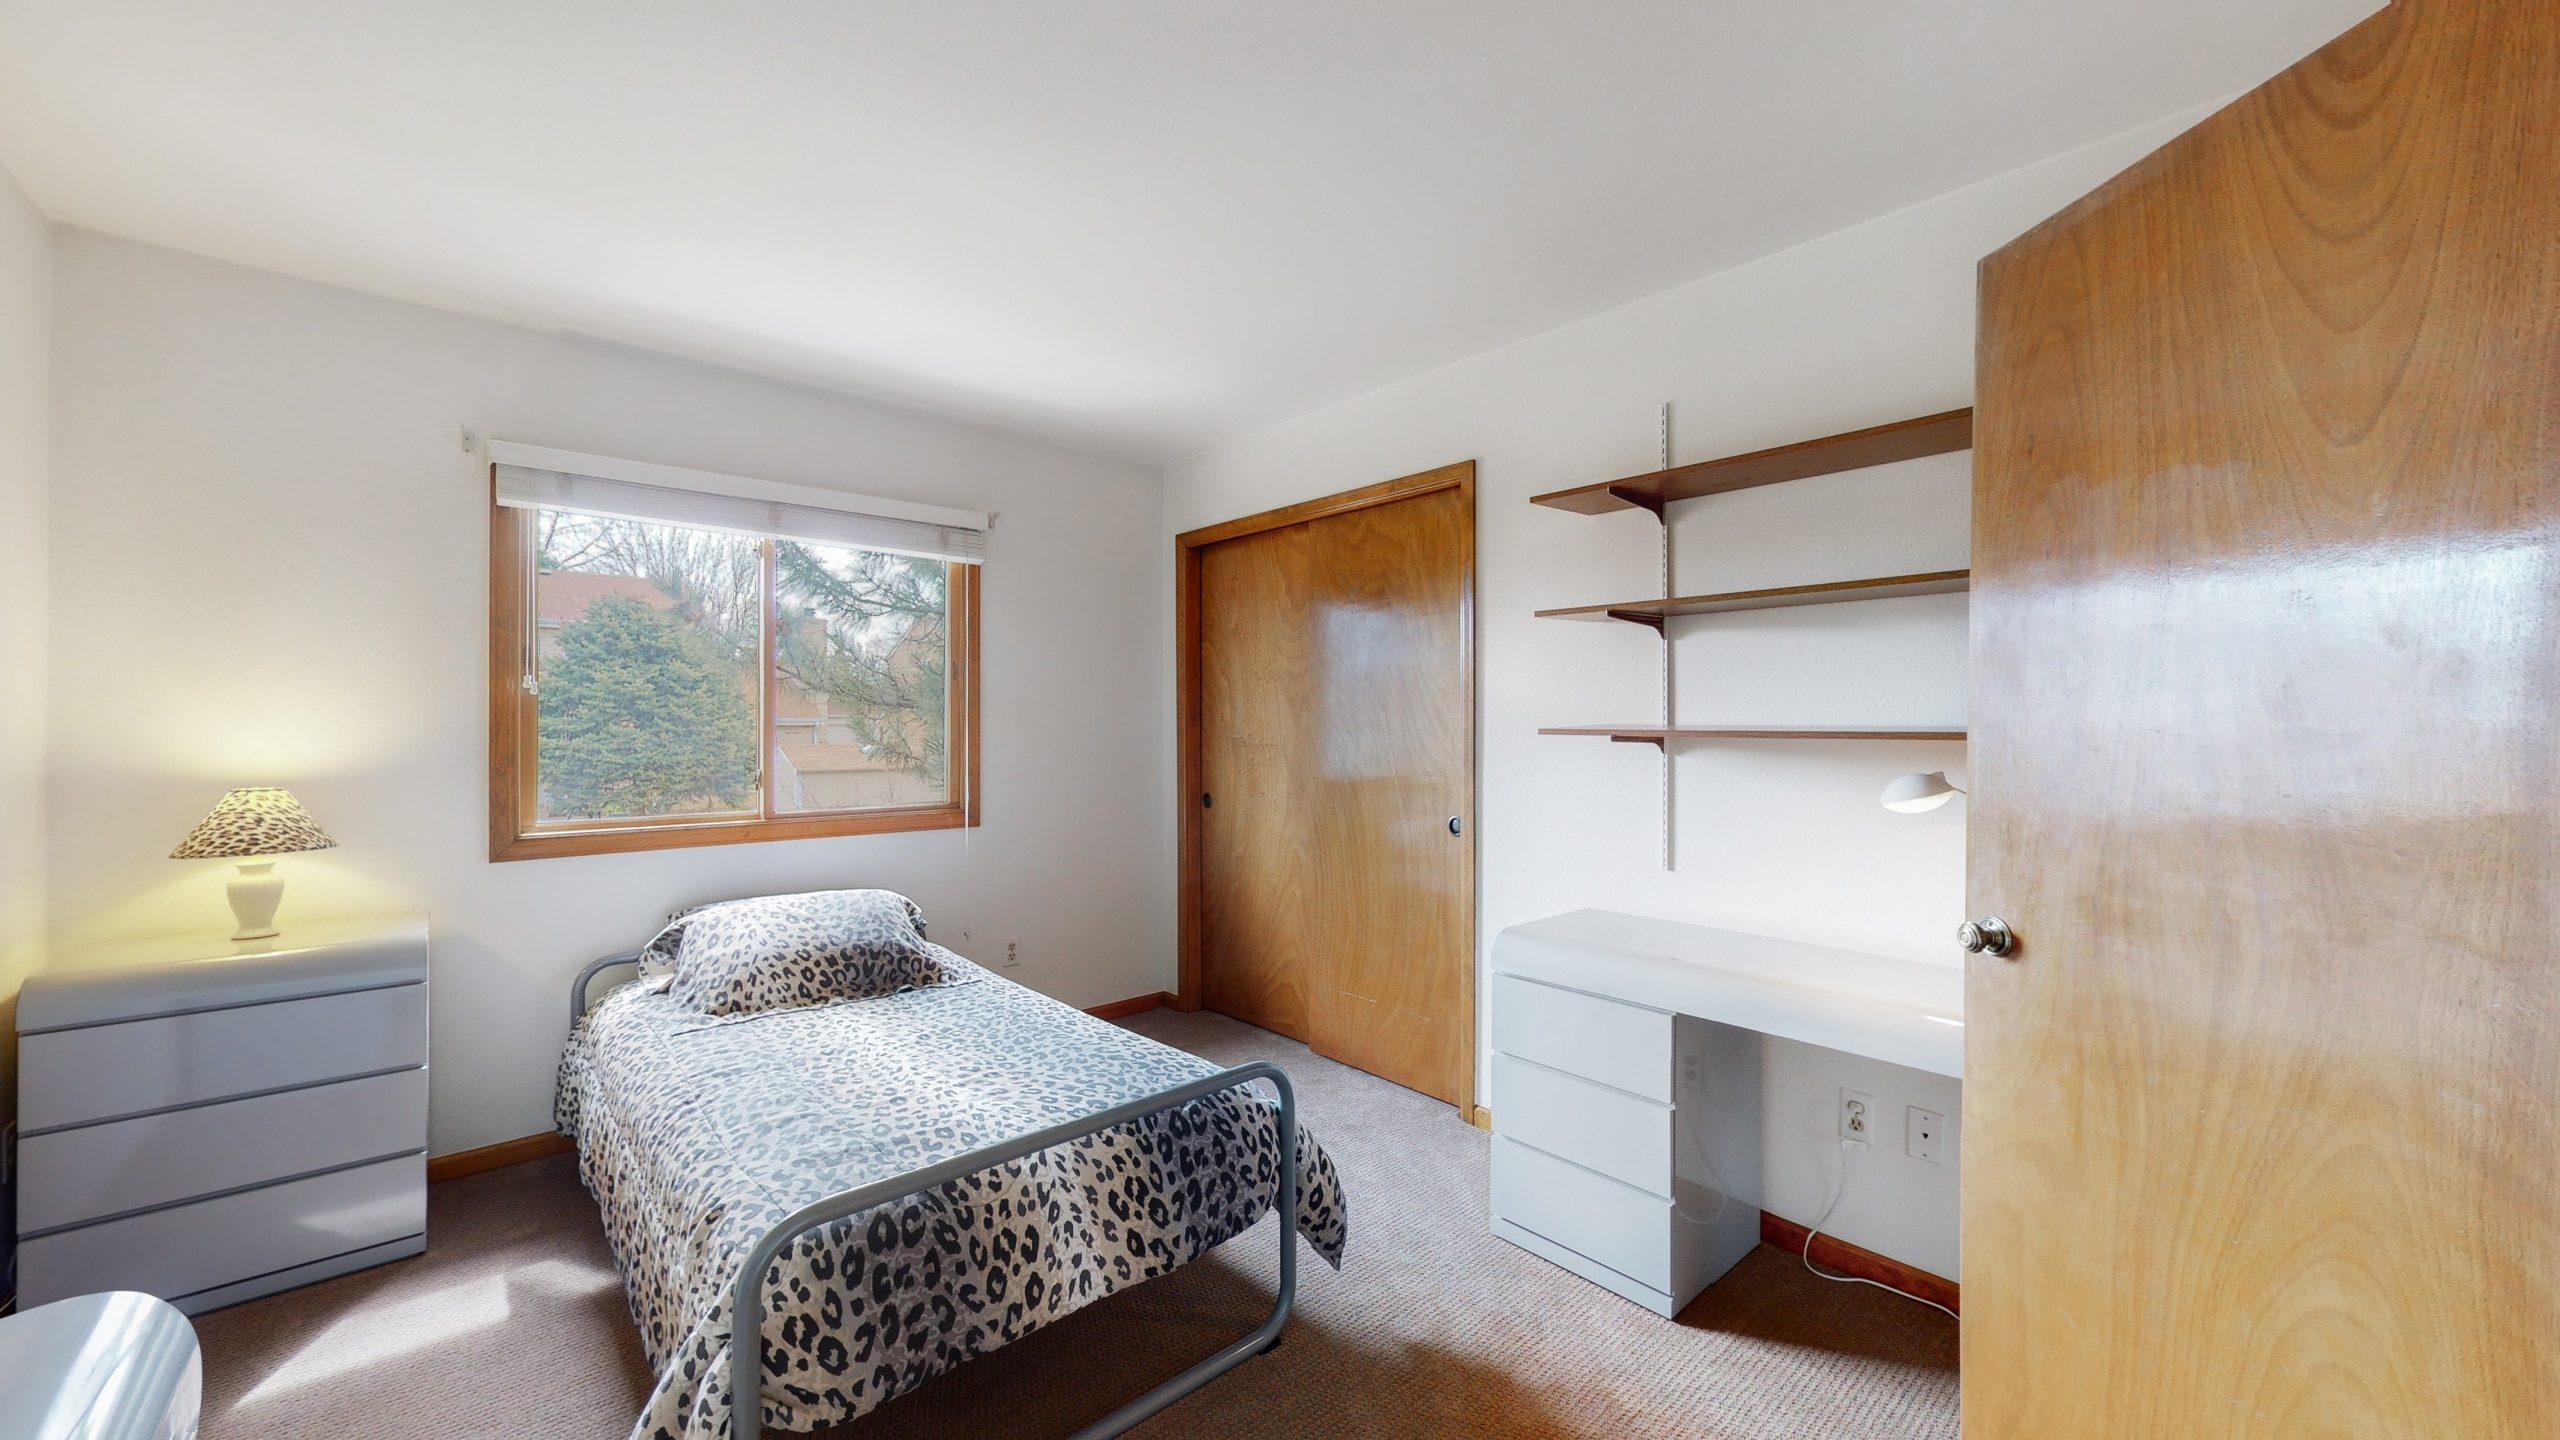 Upstairs bedroom with ample closet space